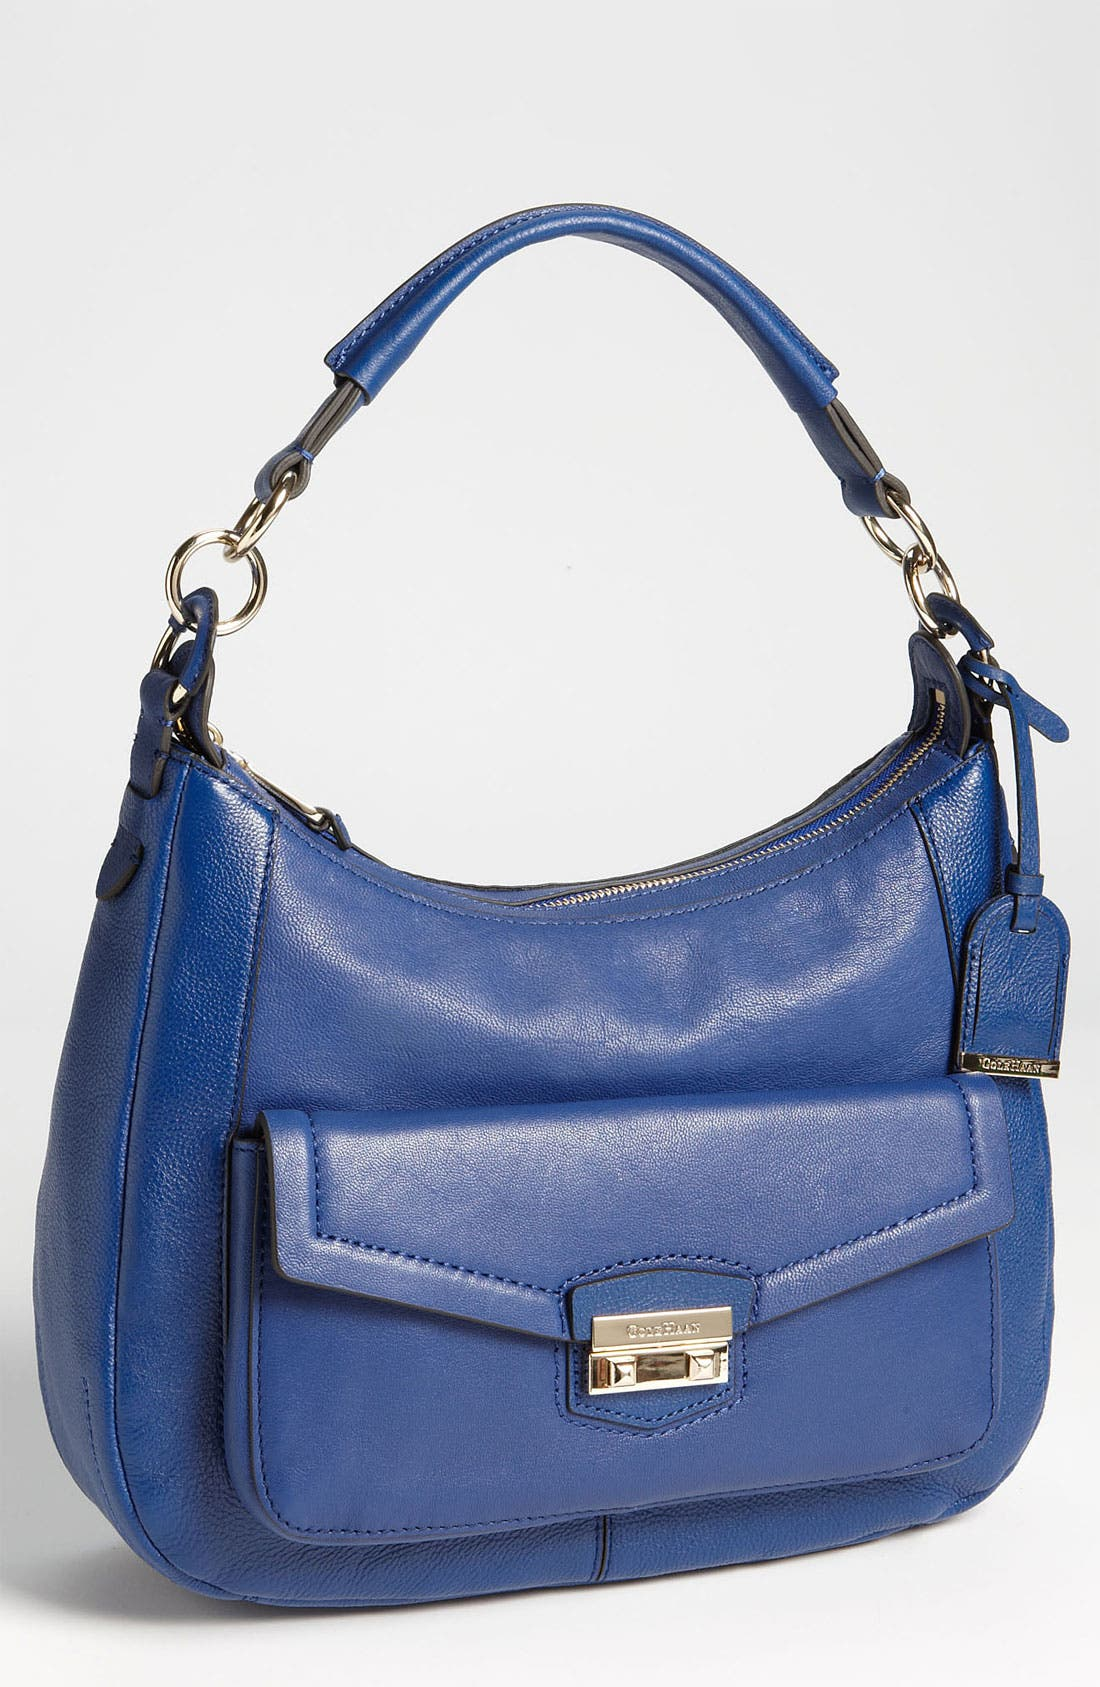 Alternate Image 1 Selected - Cole Haan 'Small' Hobo